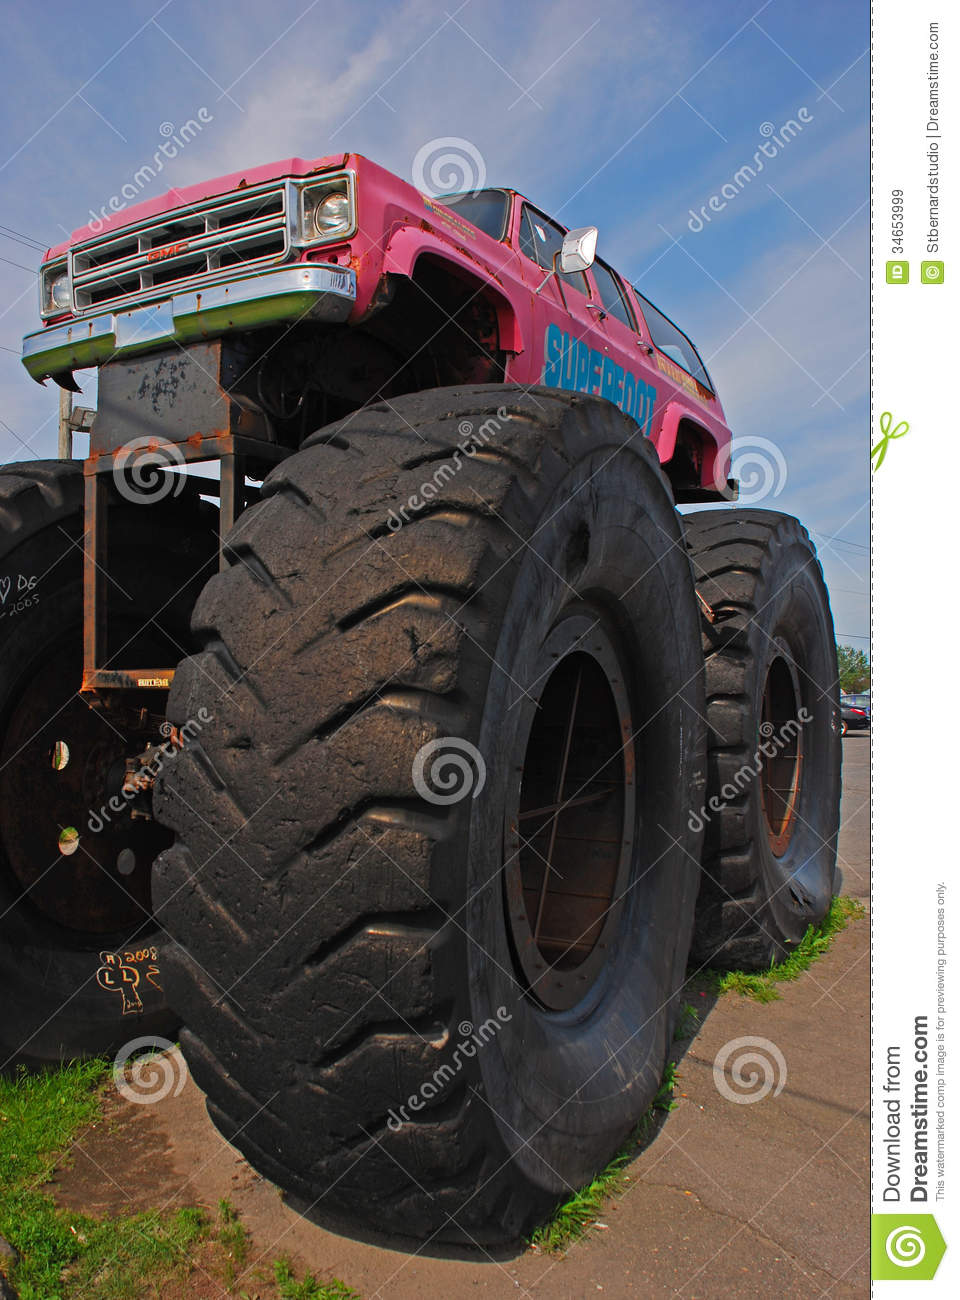 monster truck car bigfoot with giant front wheel editorial stock image image 34653999. Black Bedroom Furniture Sets. Home Design Ideas